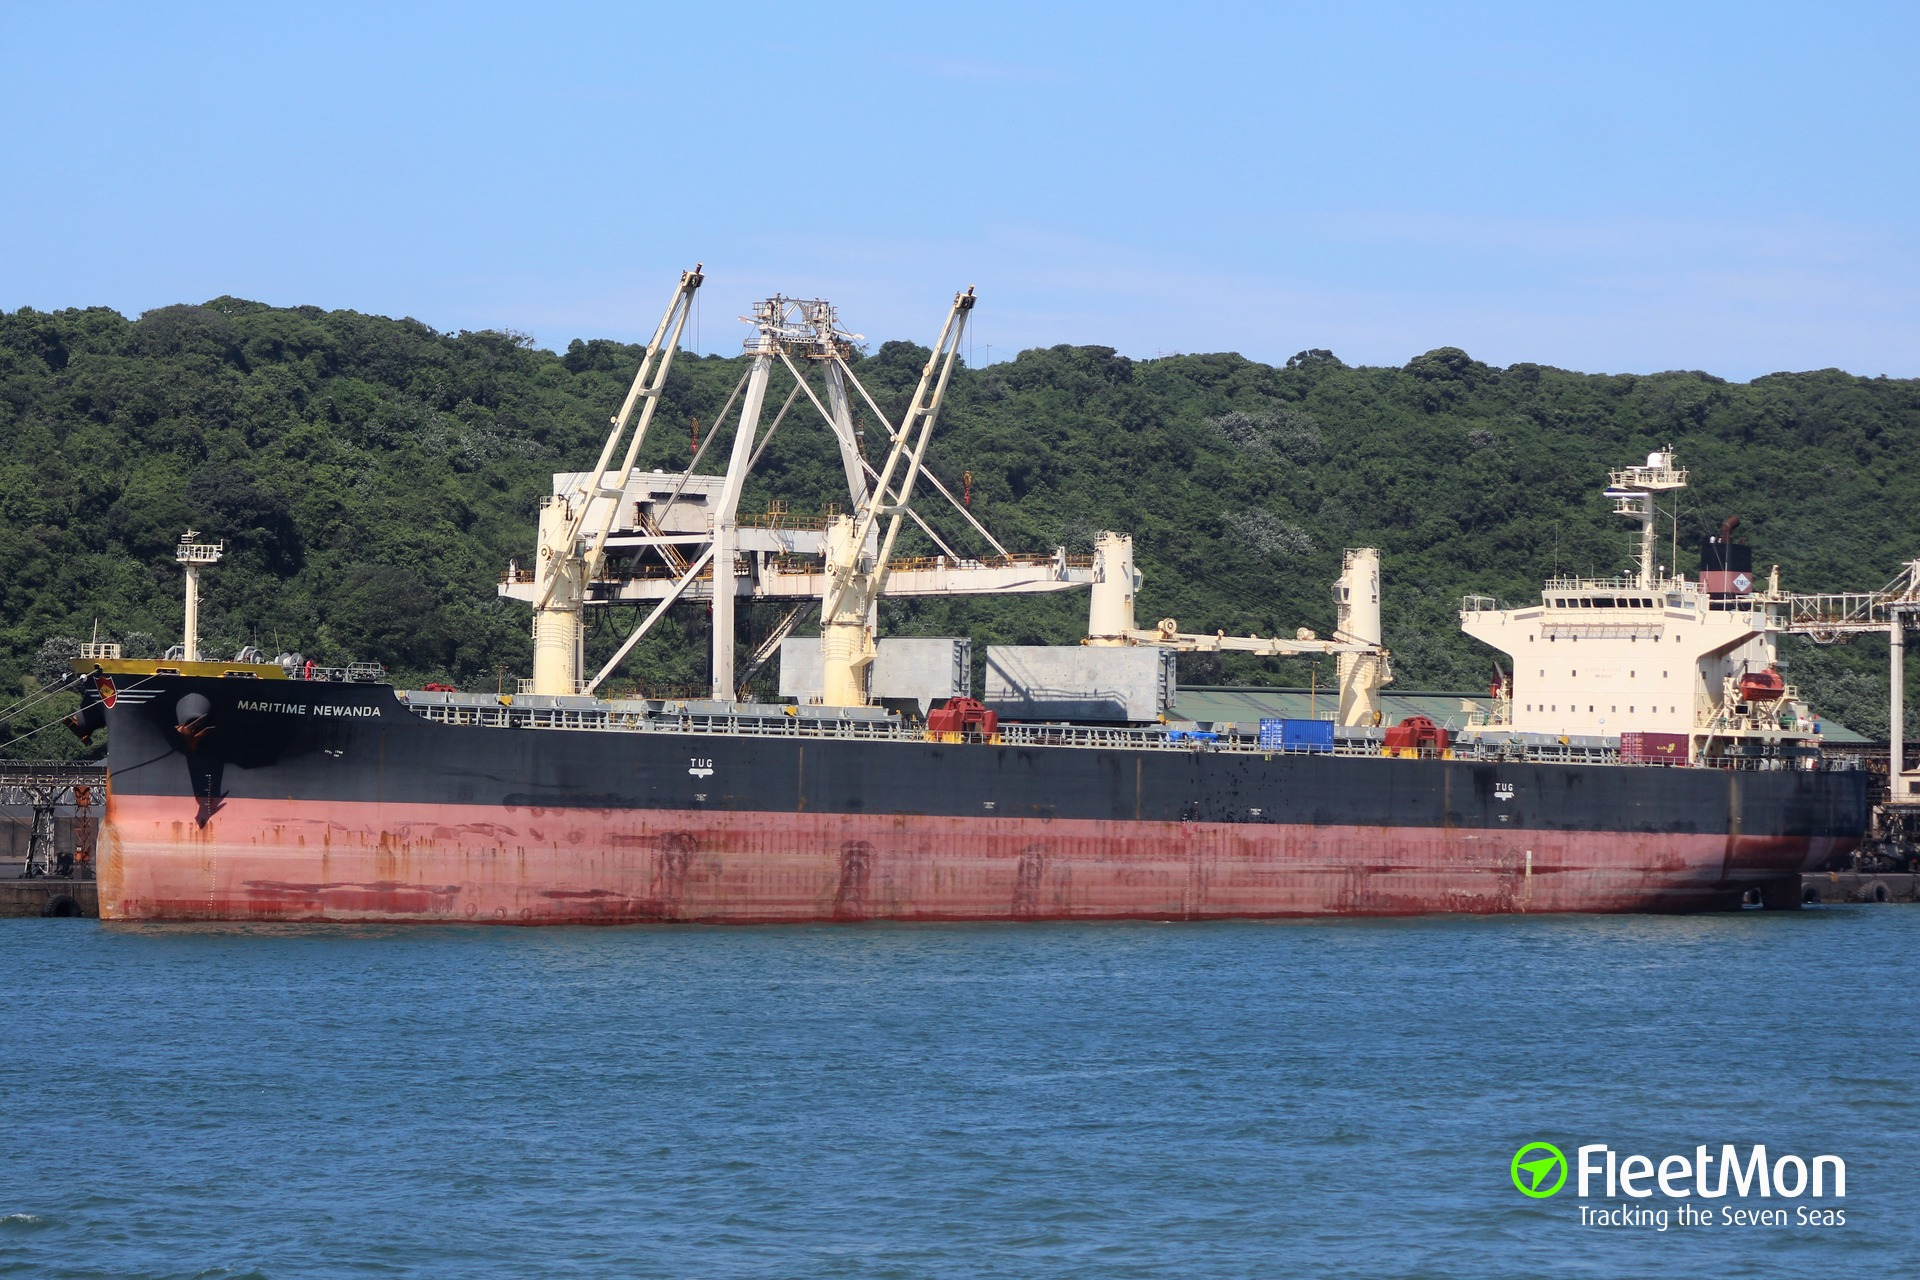 Durban mayhem: bulk carrier MARITIME NEWANDA Correction